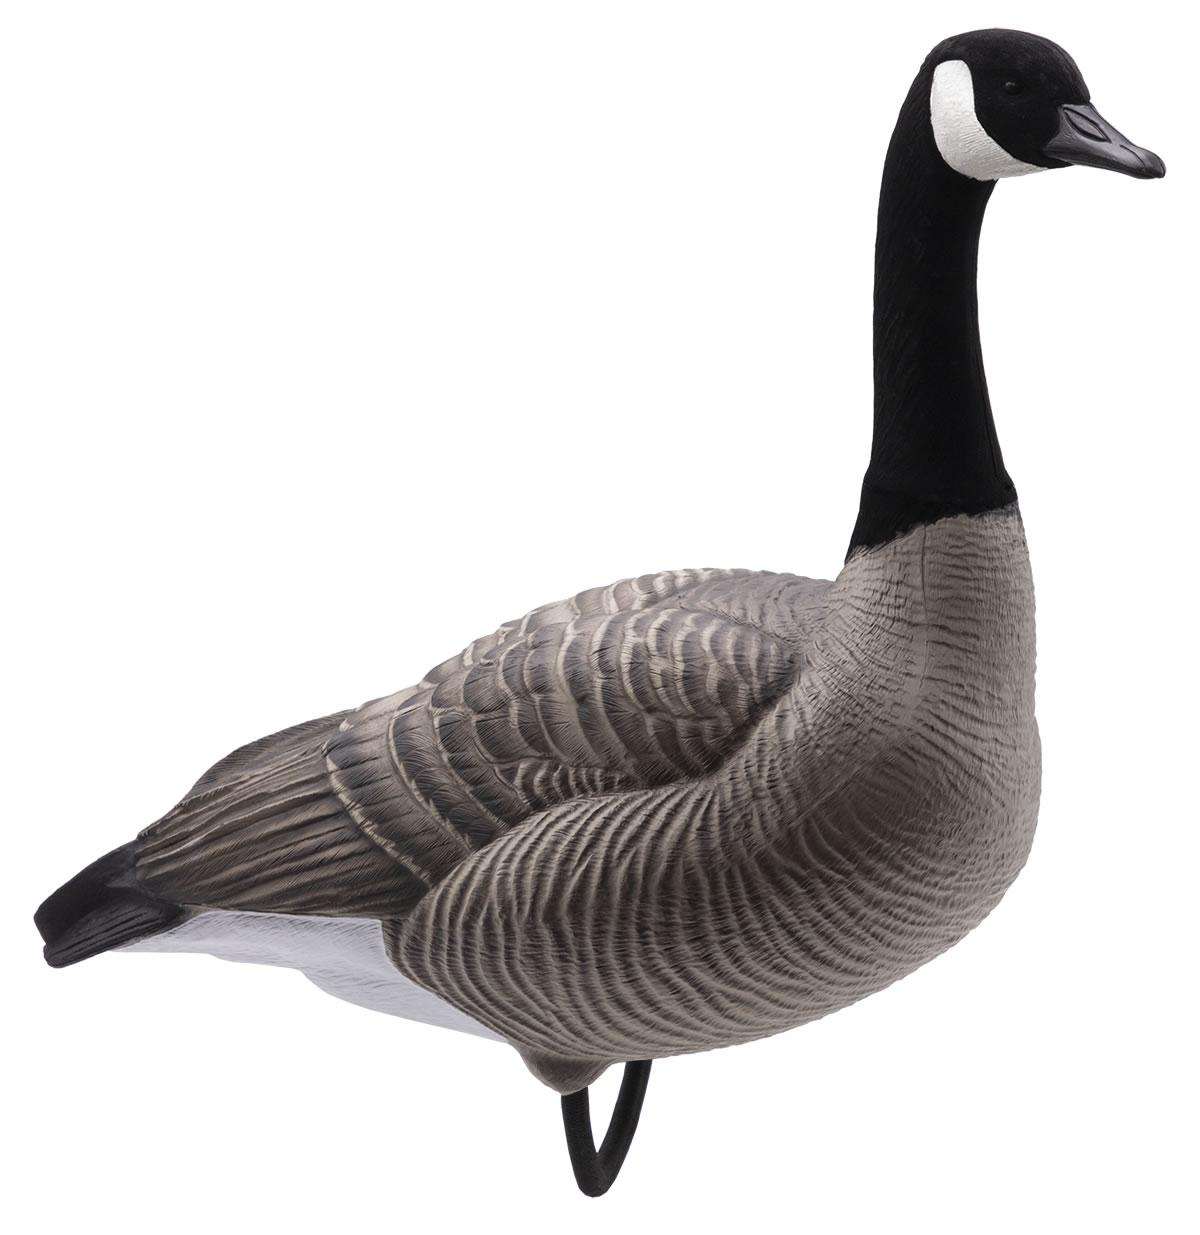 Final Approach HD Full Body Honkers with Flocked Heads, 6 Pack